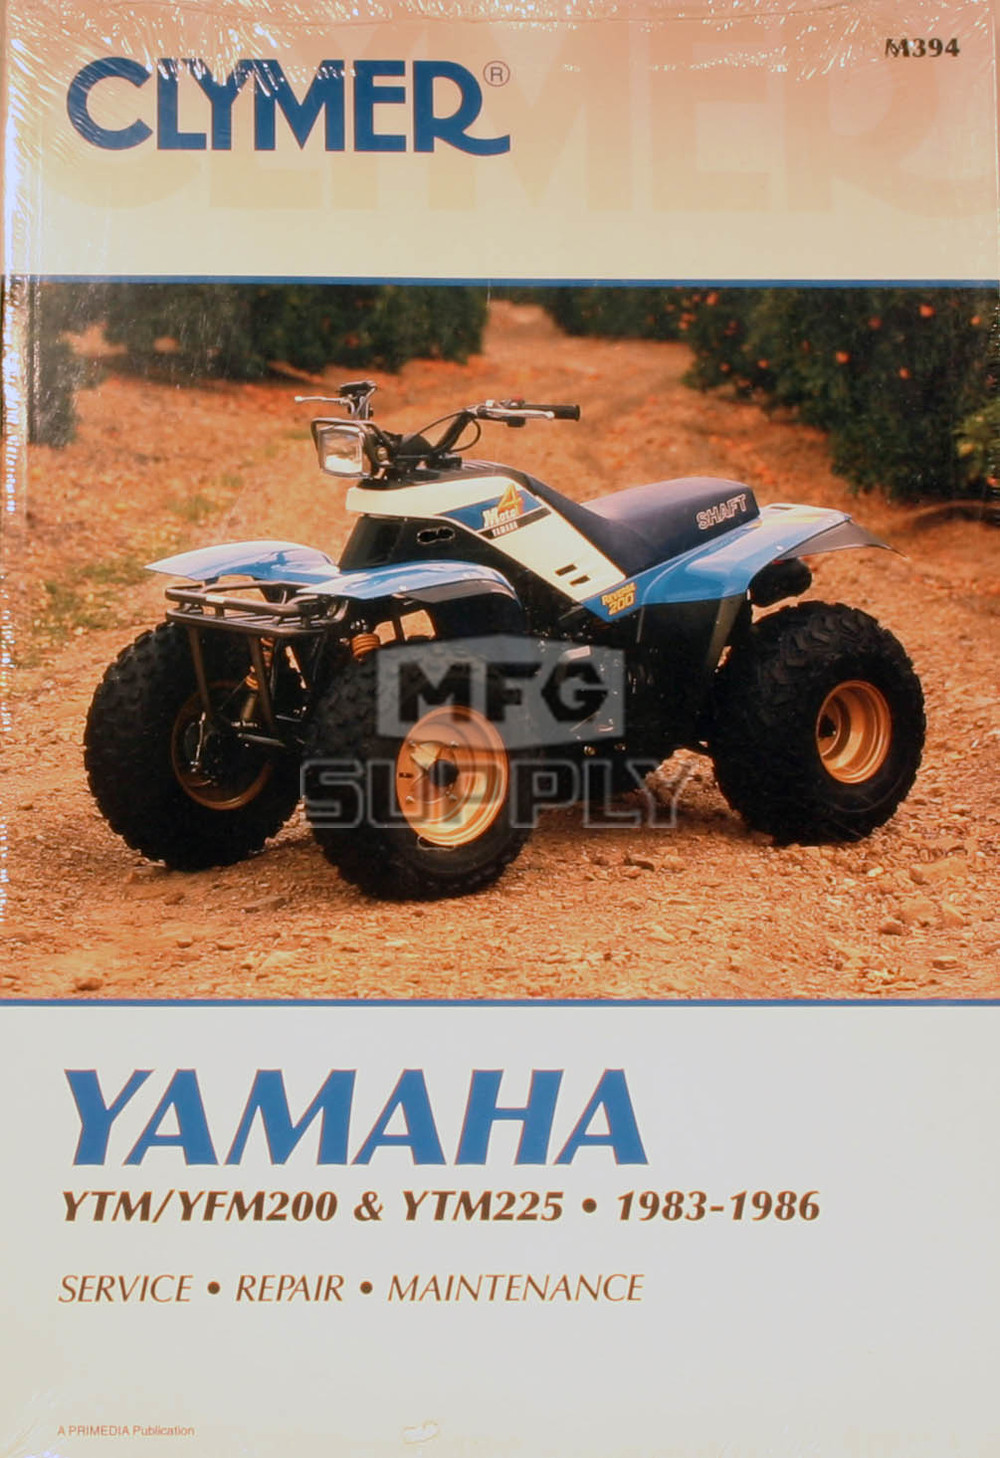 cm394 83 86 yamaha ytm yfm200 225 repair maintenance manual rh mfgsupply  com 1985 Yamaha 225